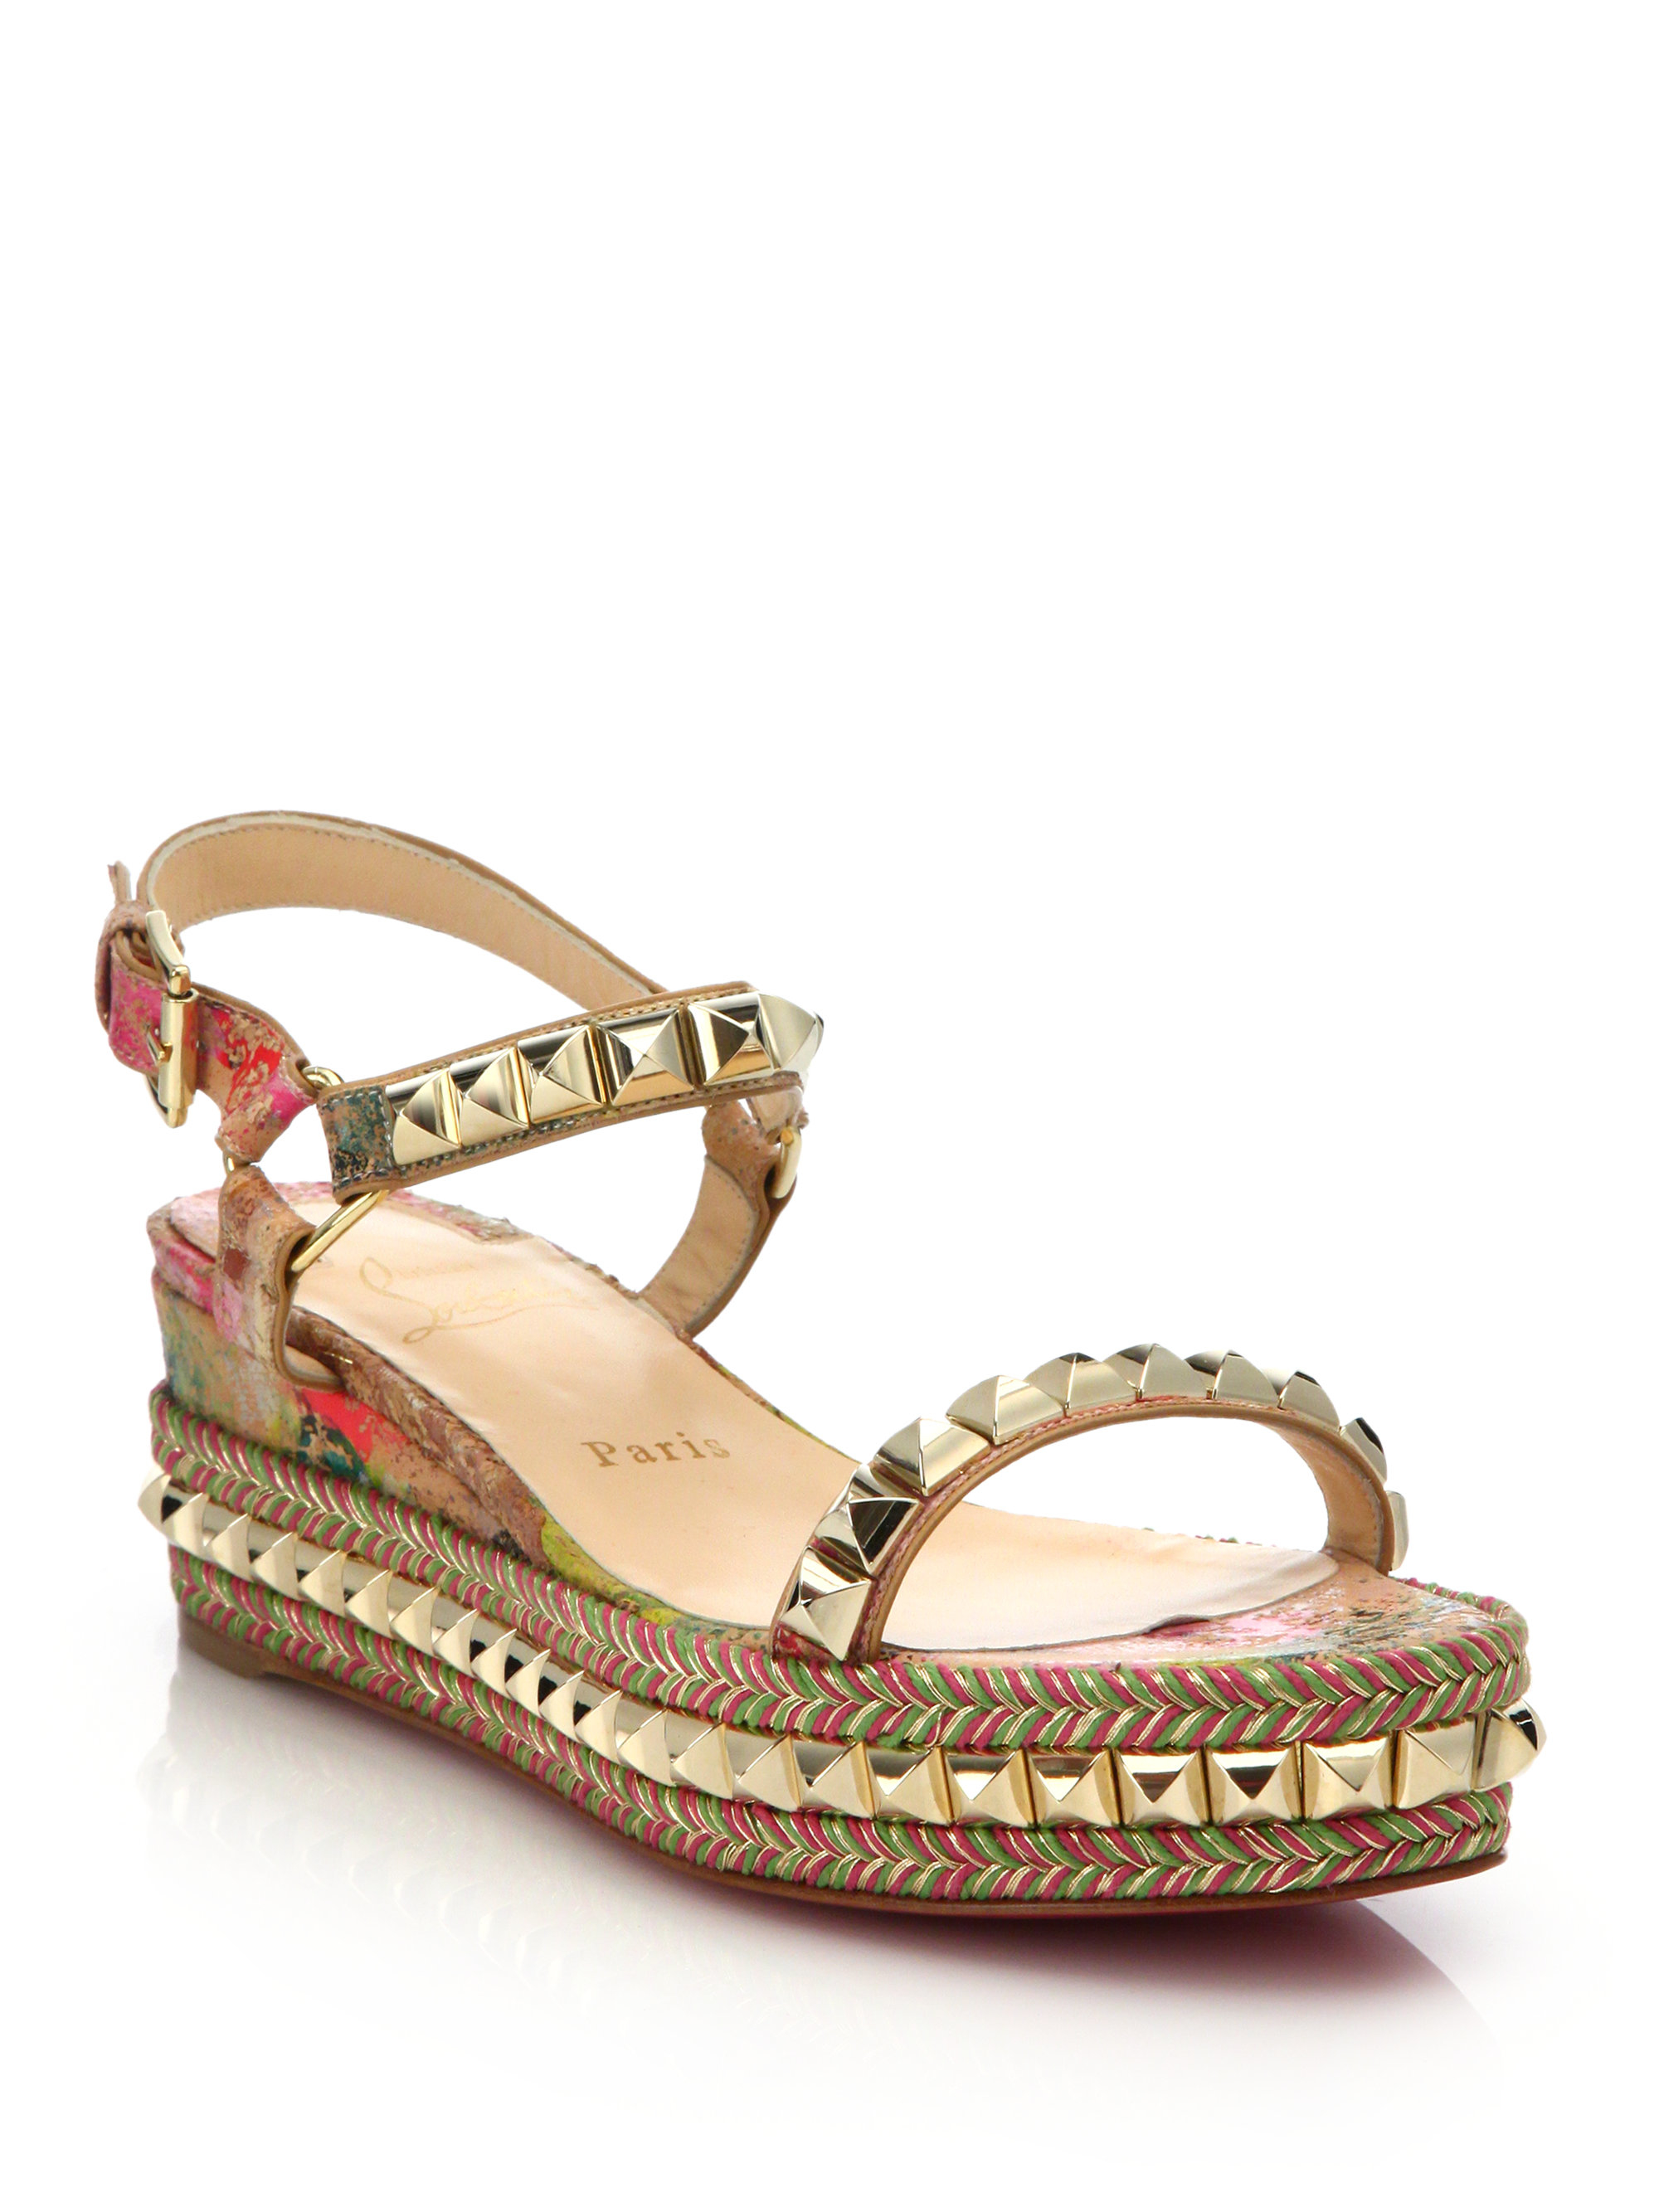 5feaa7784947 Gallery. Previously sold at  Saks Fifth Avenue · Women s Christian  Louboutin Cataclou